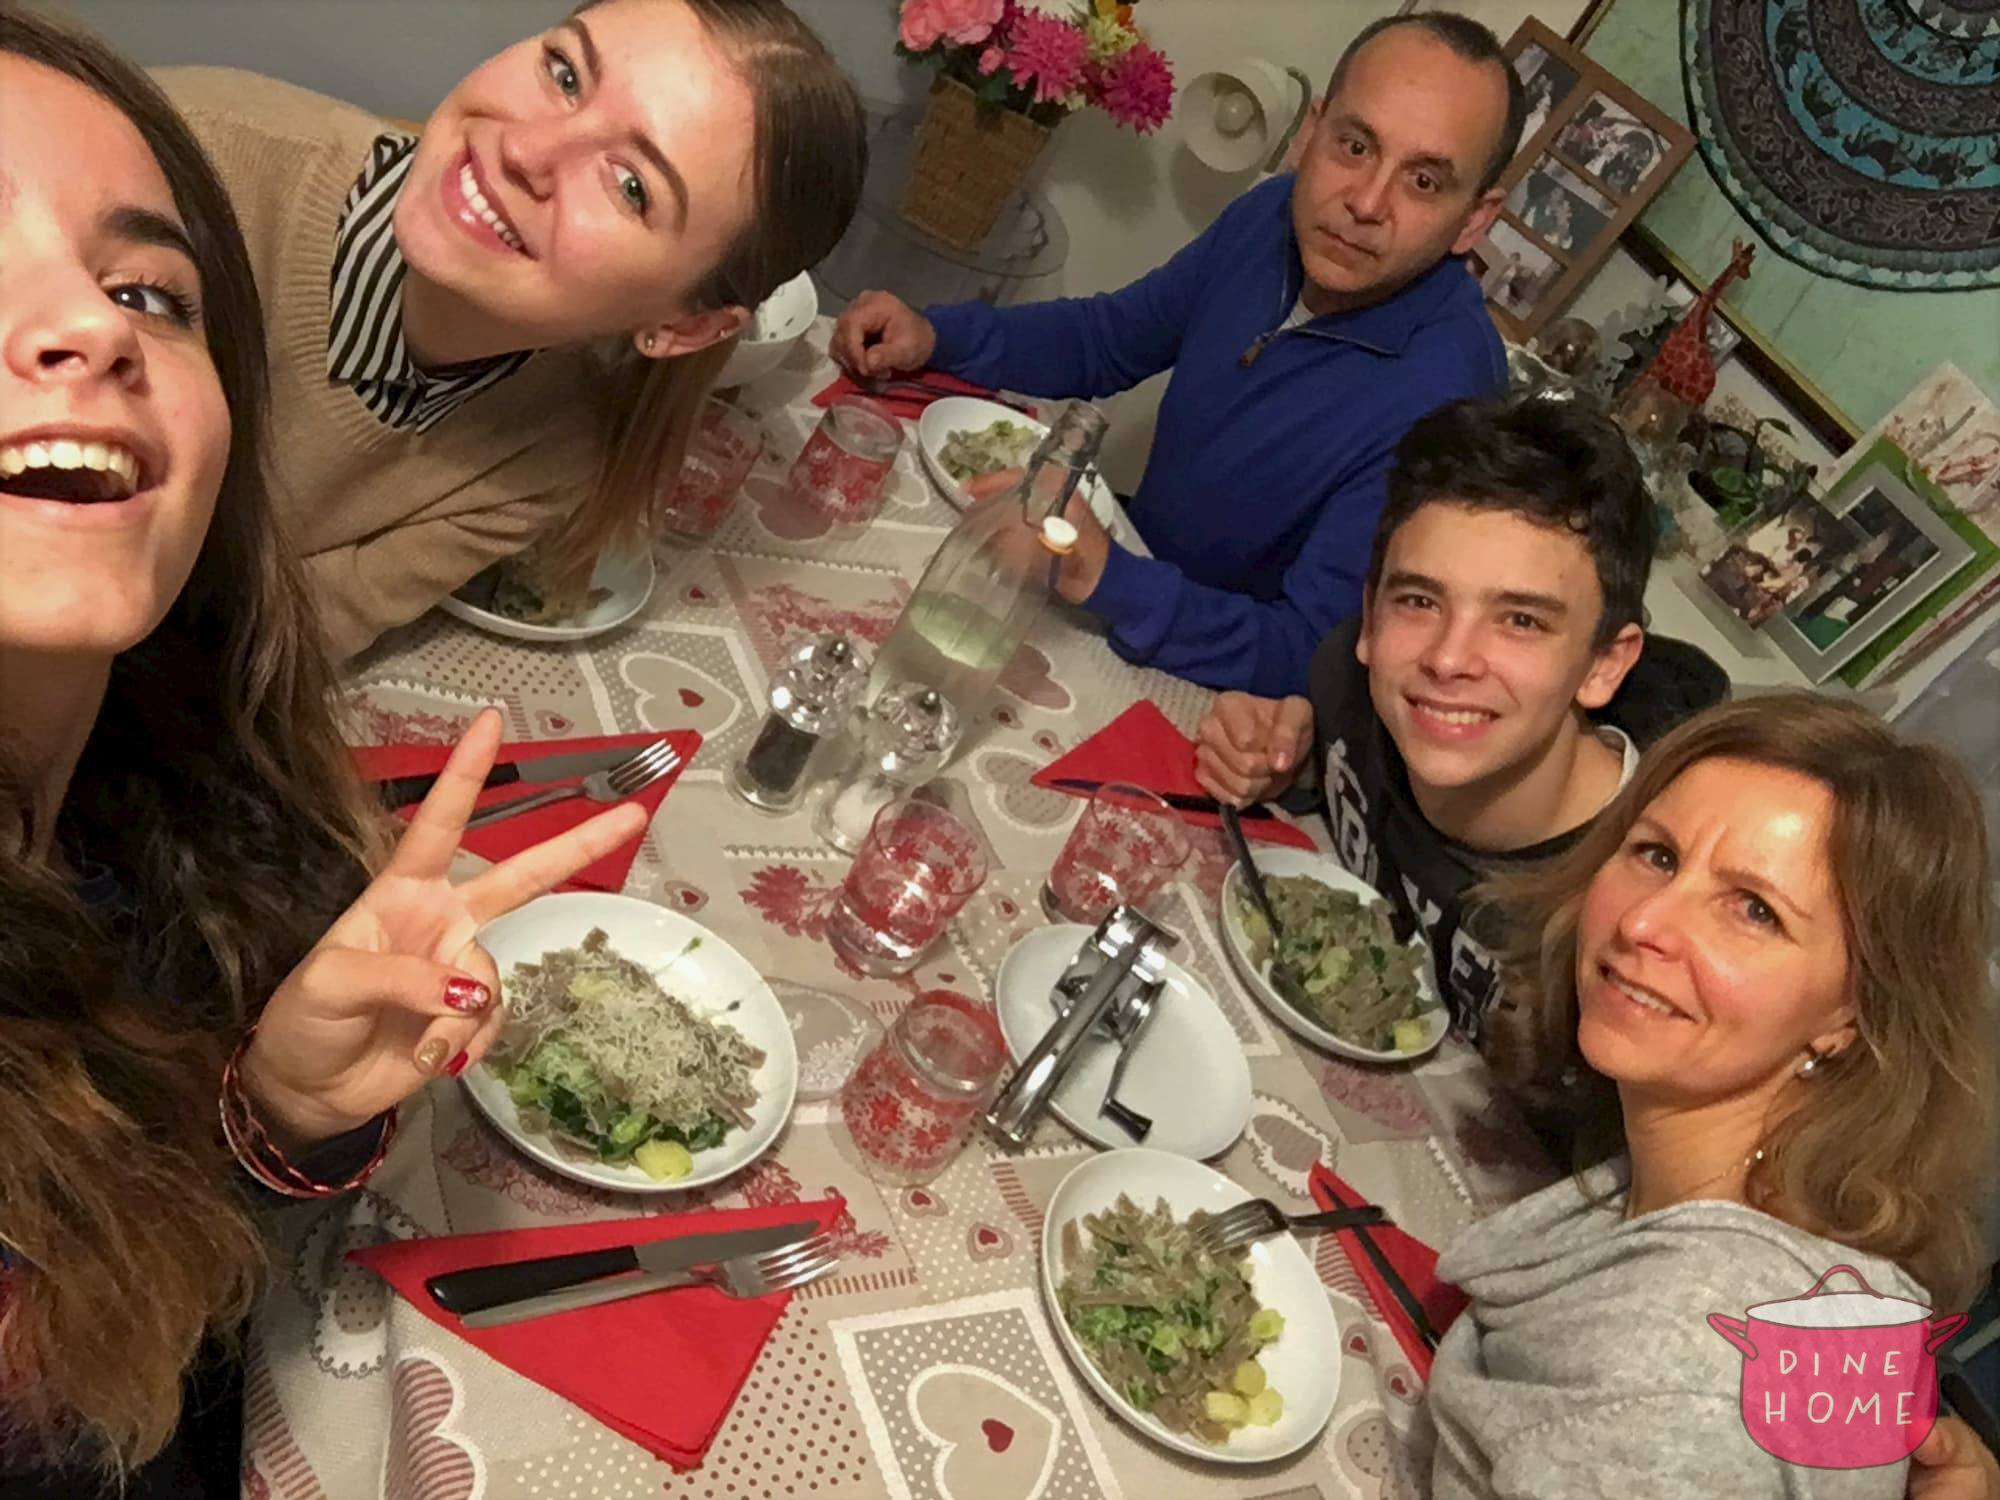 Martyna, student from Lithuania, having dinner with her Dinehome family.